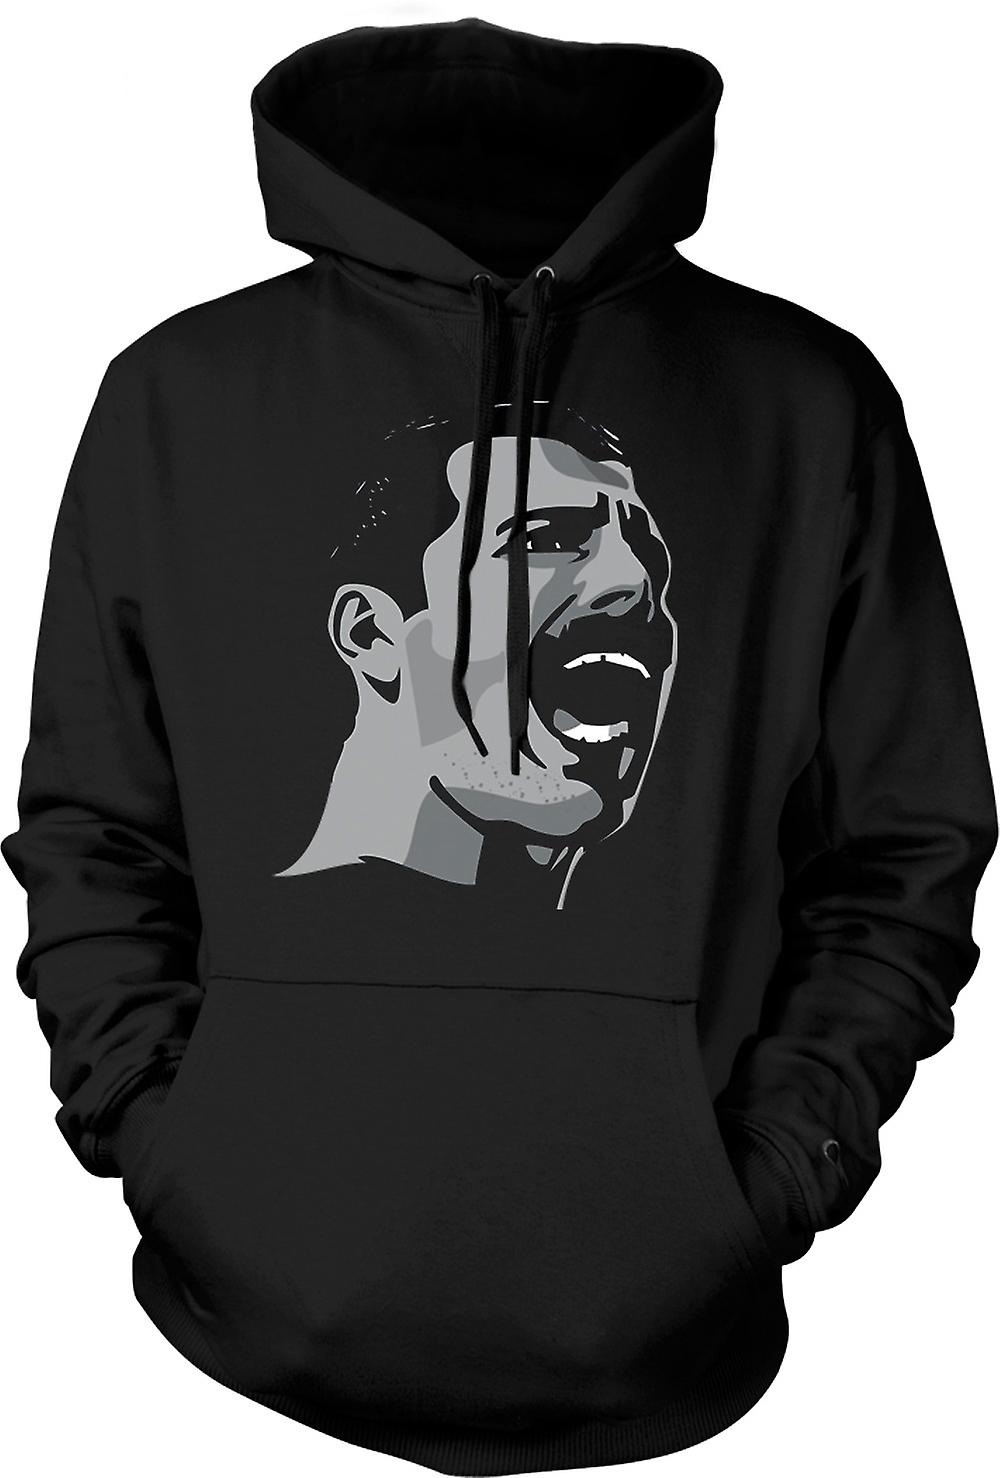 Mens Hoodie - Freddie Mercury Pop Art Portrait